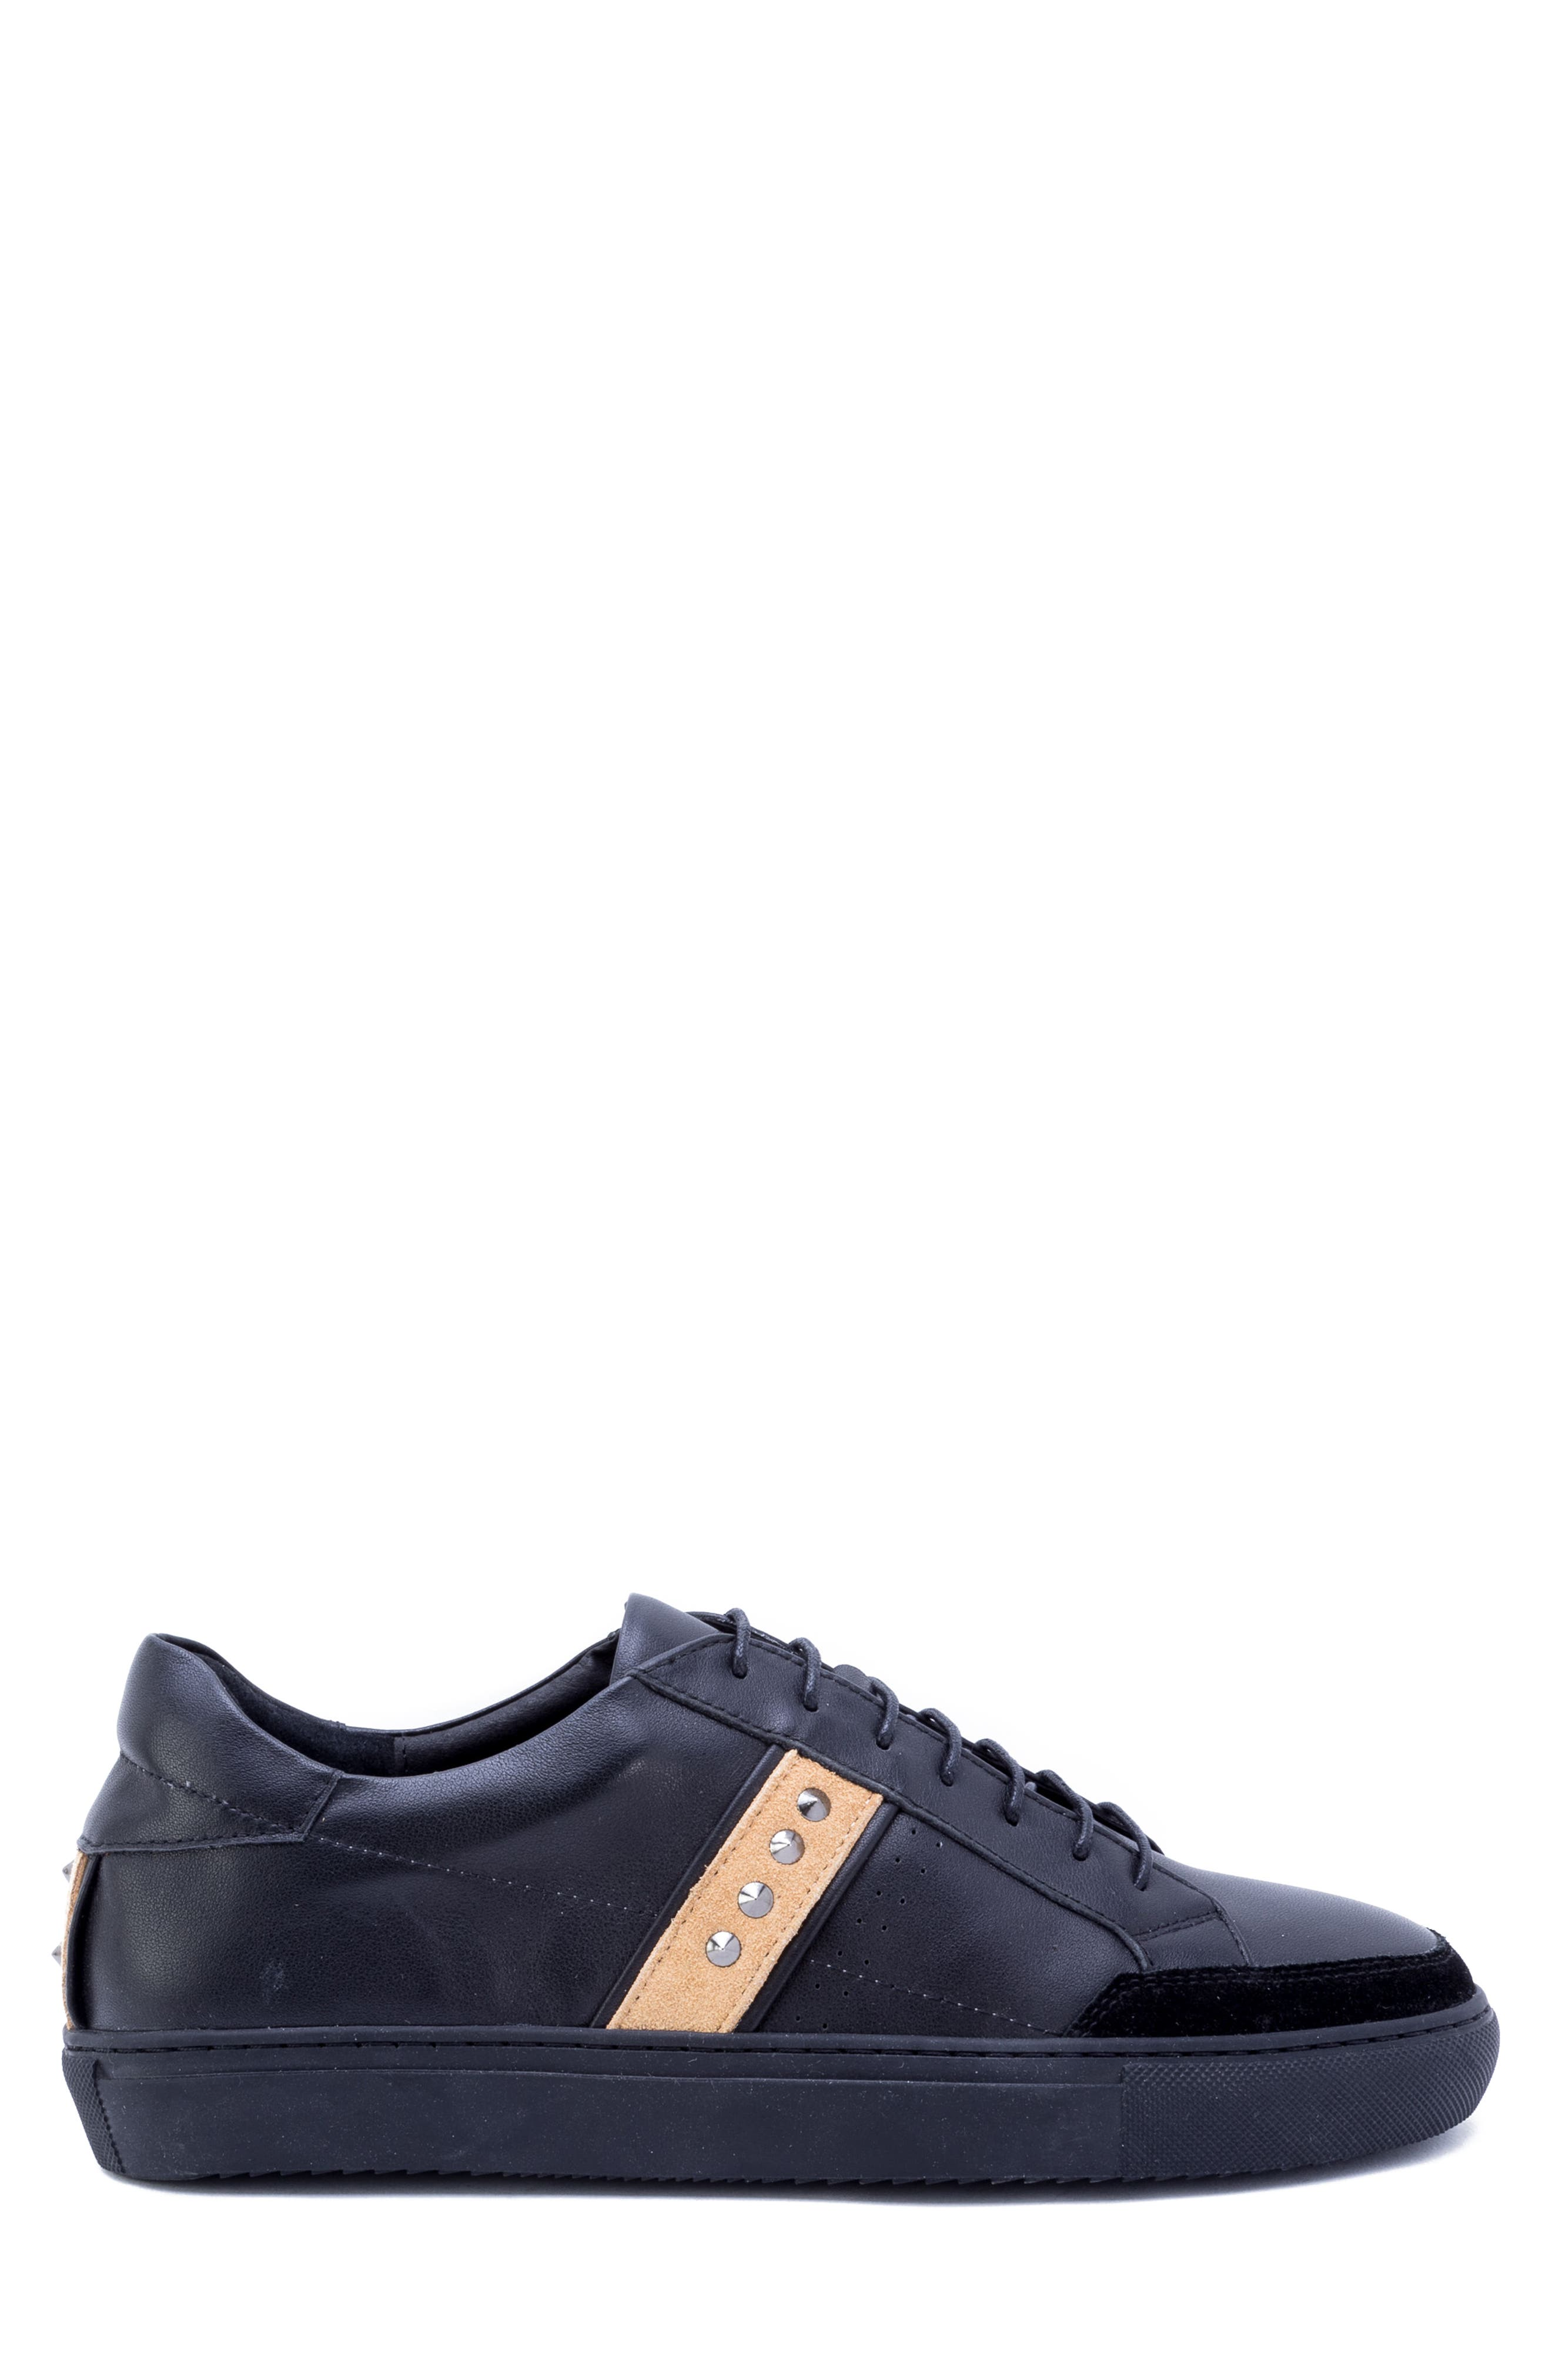 Badgley Mischka Connery Sneaker,                             Alternate thumbnail 3, color,                             BLACK LEATHER